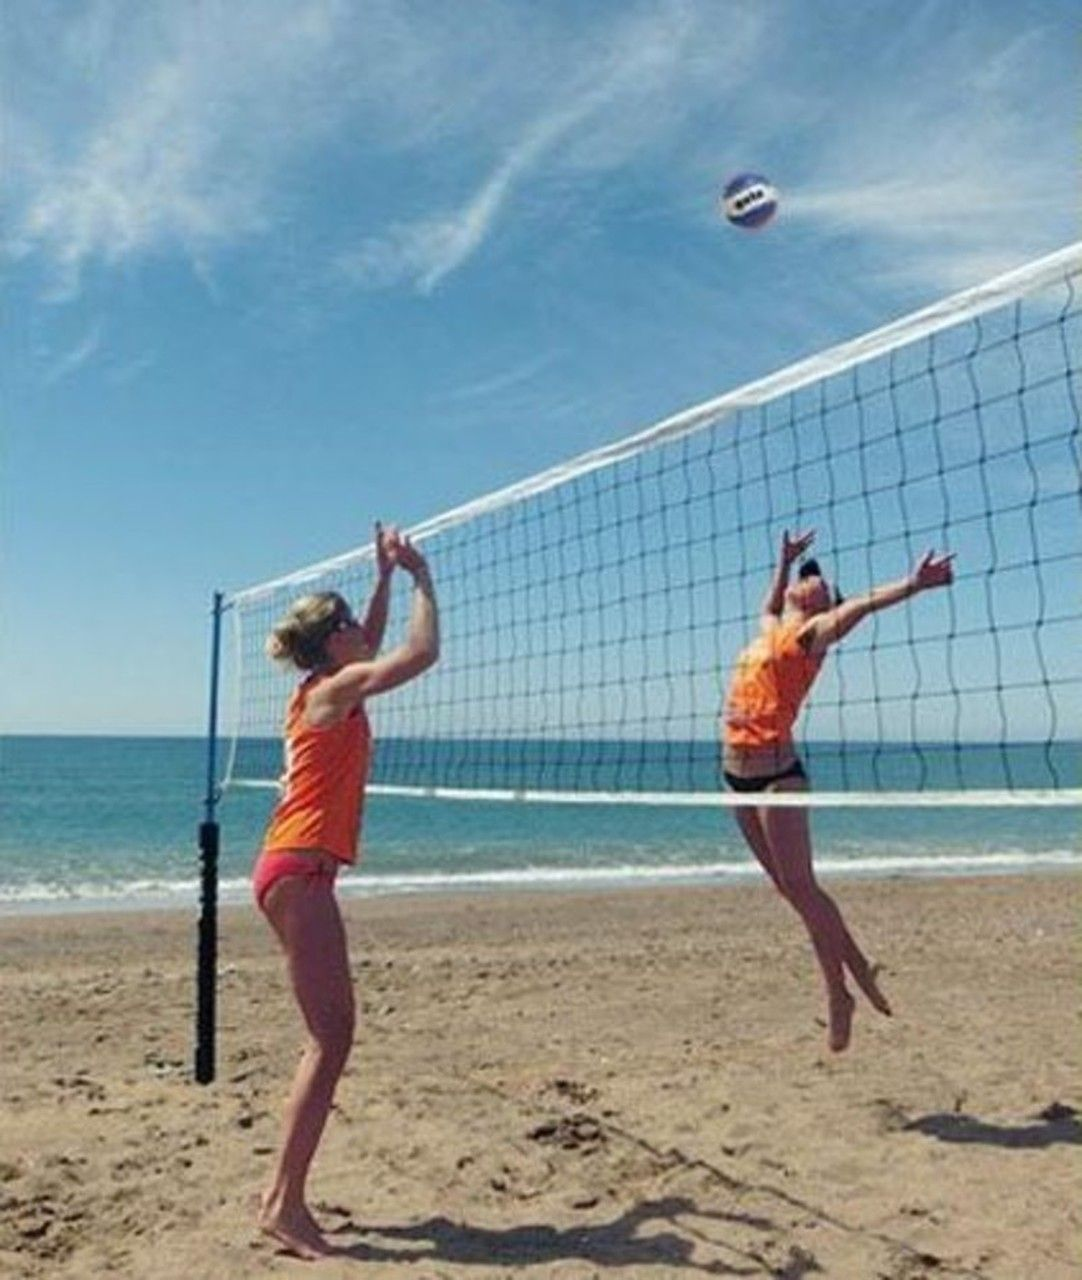 Viper Portable Volleyball Net System Volleyball Net Systems Portable Volleyball Net Volleyball Net Volleyball